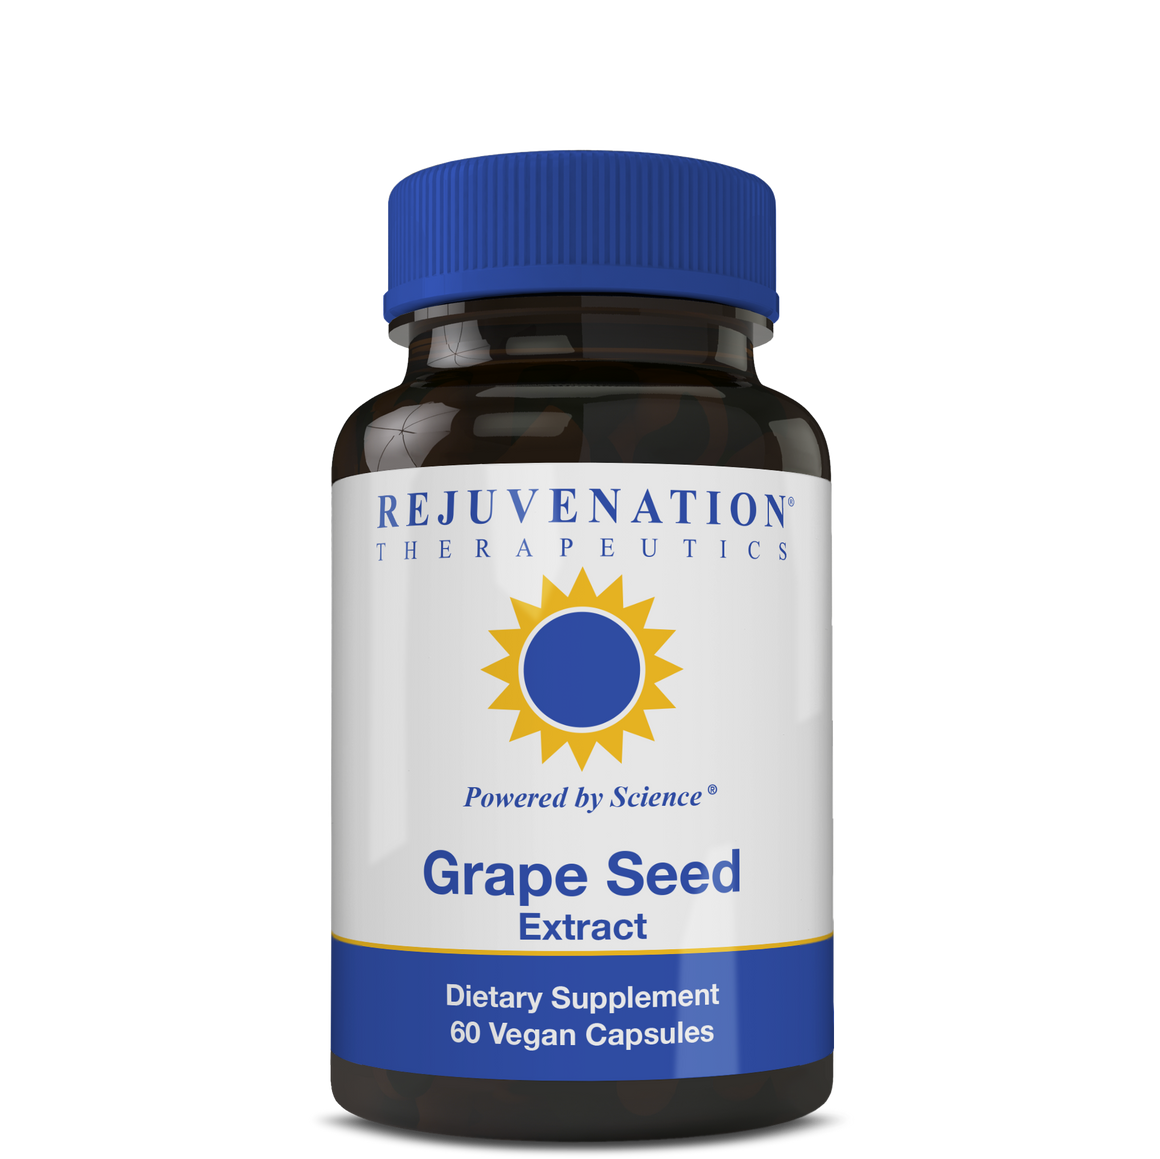 Grape Seed Extract (300 mg, 60 Vegan Capsules) - Heart Health & Antioxidant Support, Non-GMO, Gluten-Free